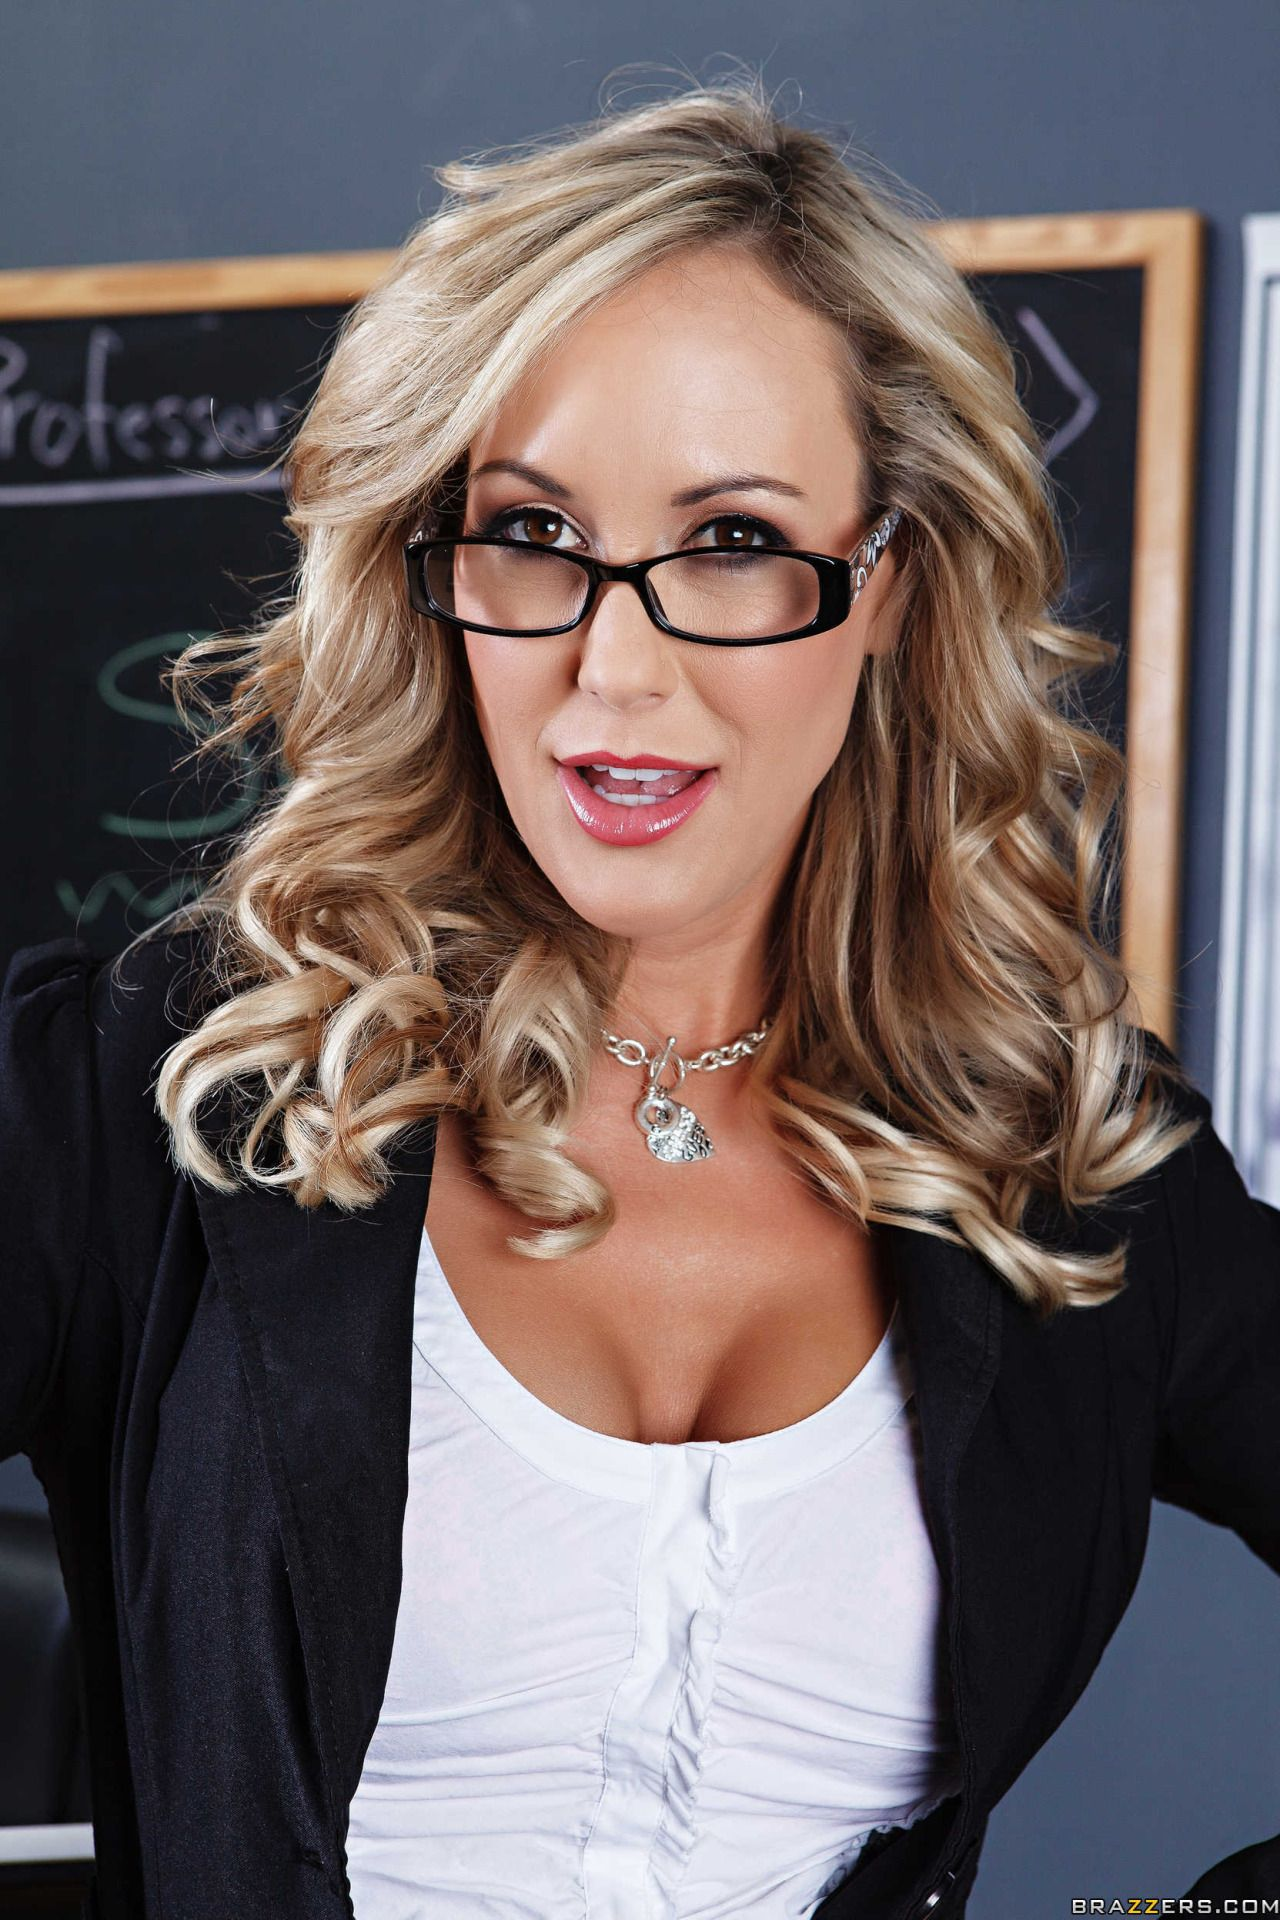 Brandi love - Home | Facebook | 1920x1280